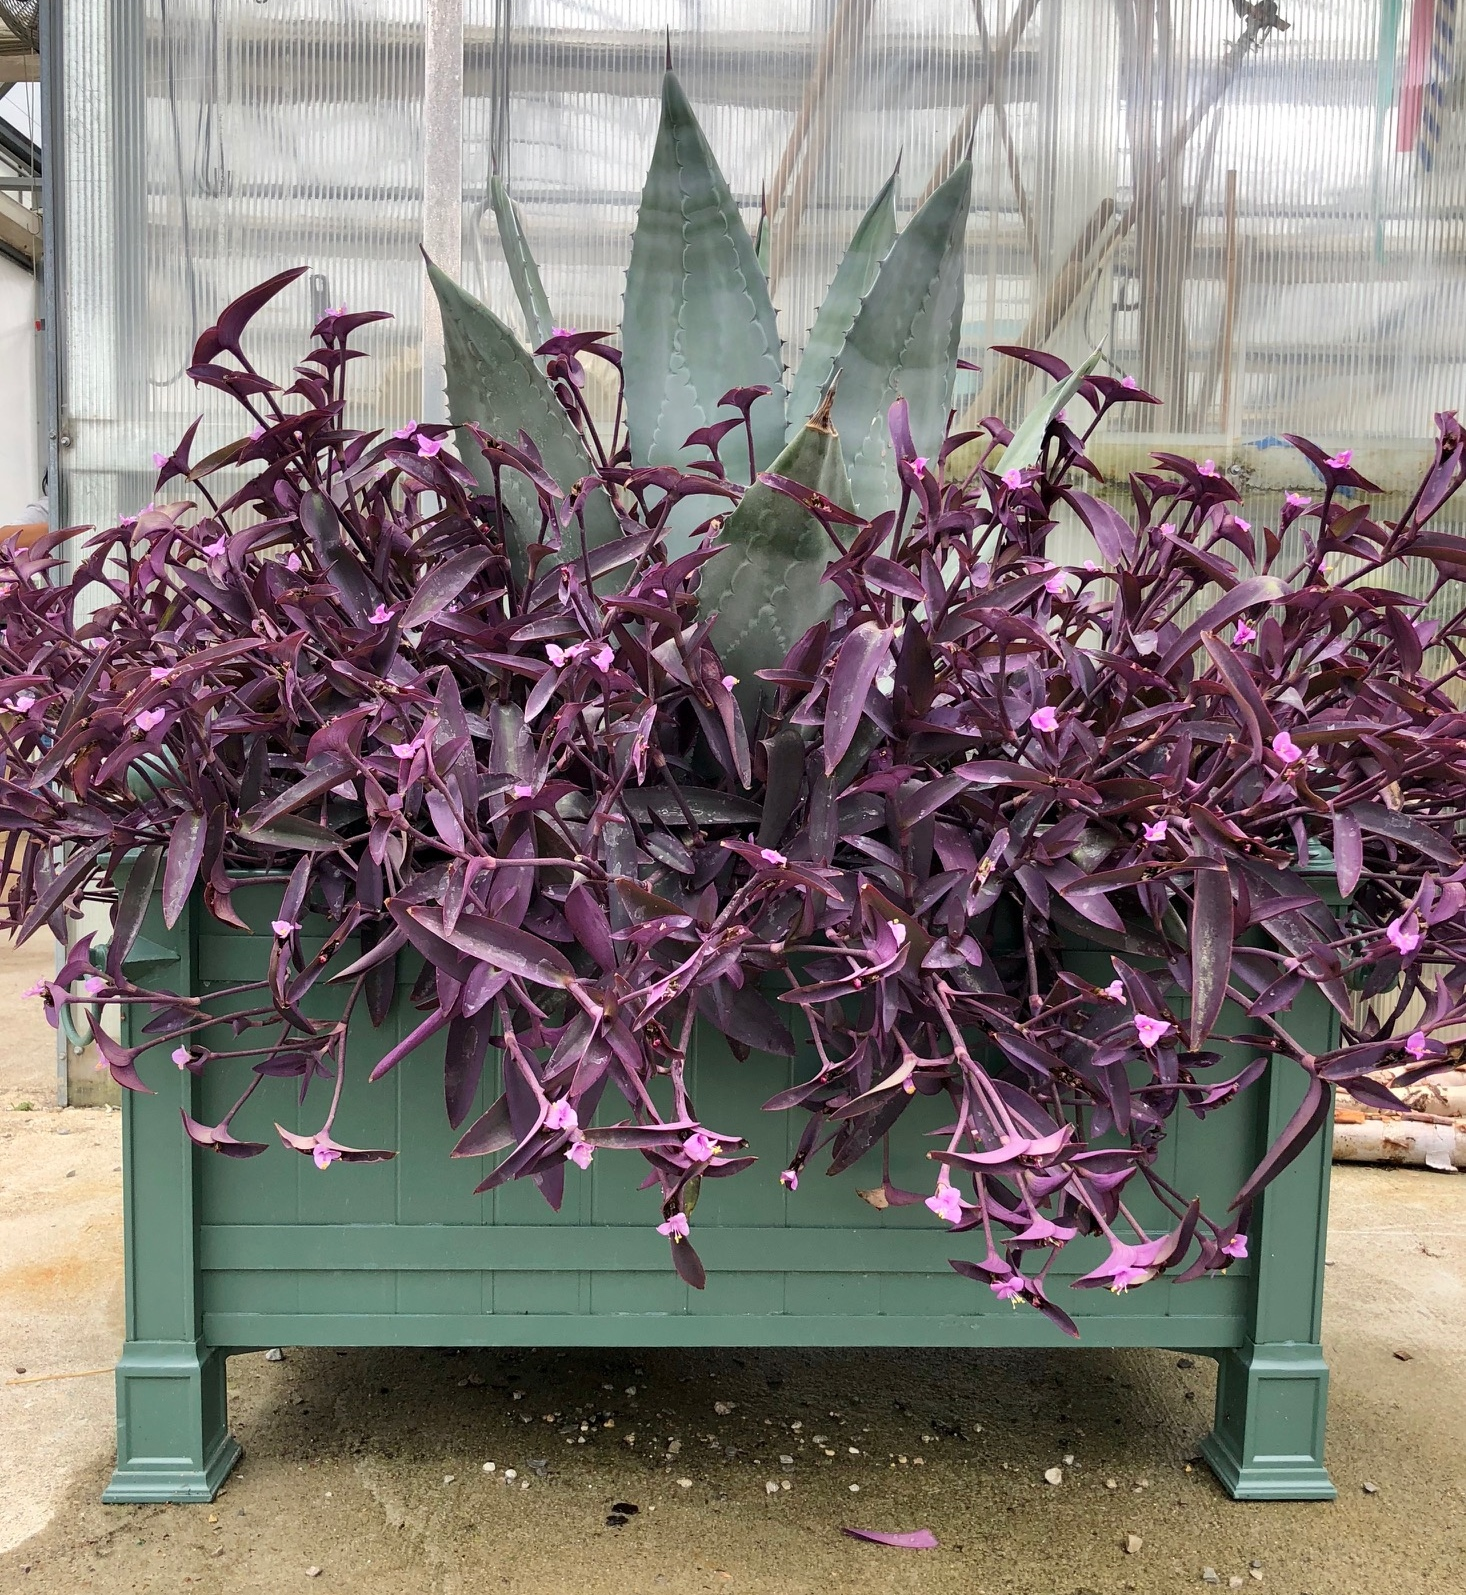 Agave americana and Tradescantia pallida 'Purple Queen' Planted in a Restoration Hardware Container Swapping Perennials for Annual Color - taking Inspiration from the Silver Garden at Longwood Gardens. Thinking Outside the Boxwood